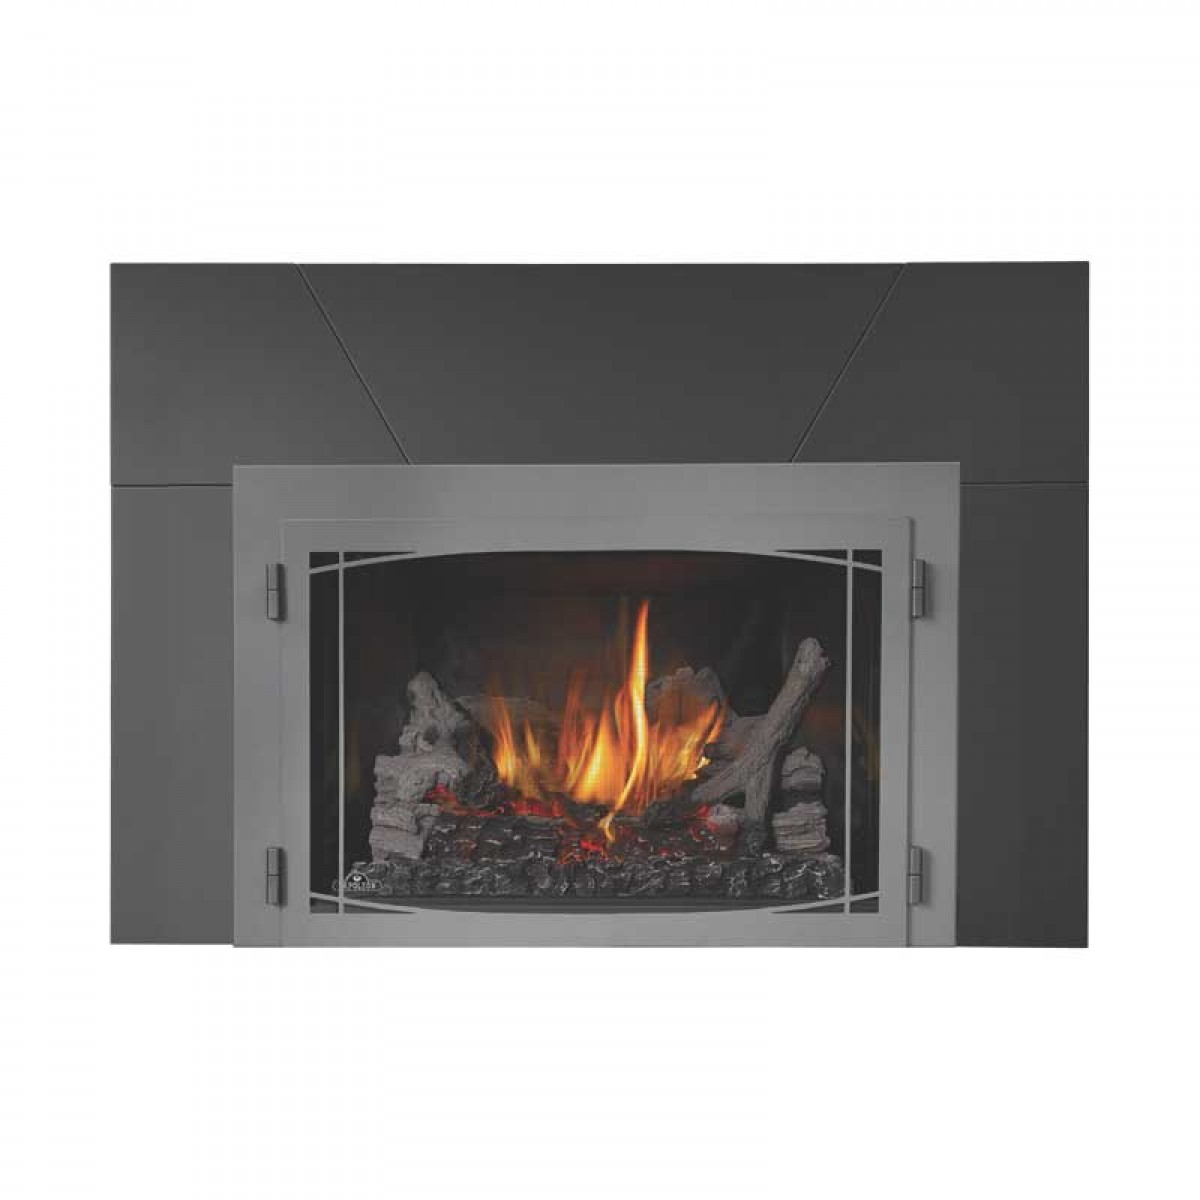 Napoleon Direct Vent Fireplaces Gas Fireplace Insert